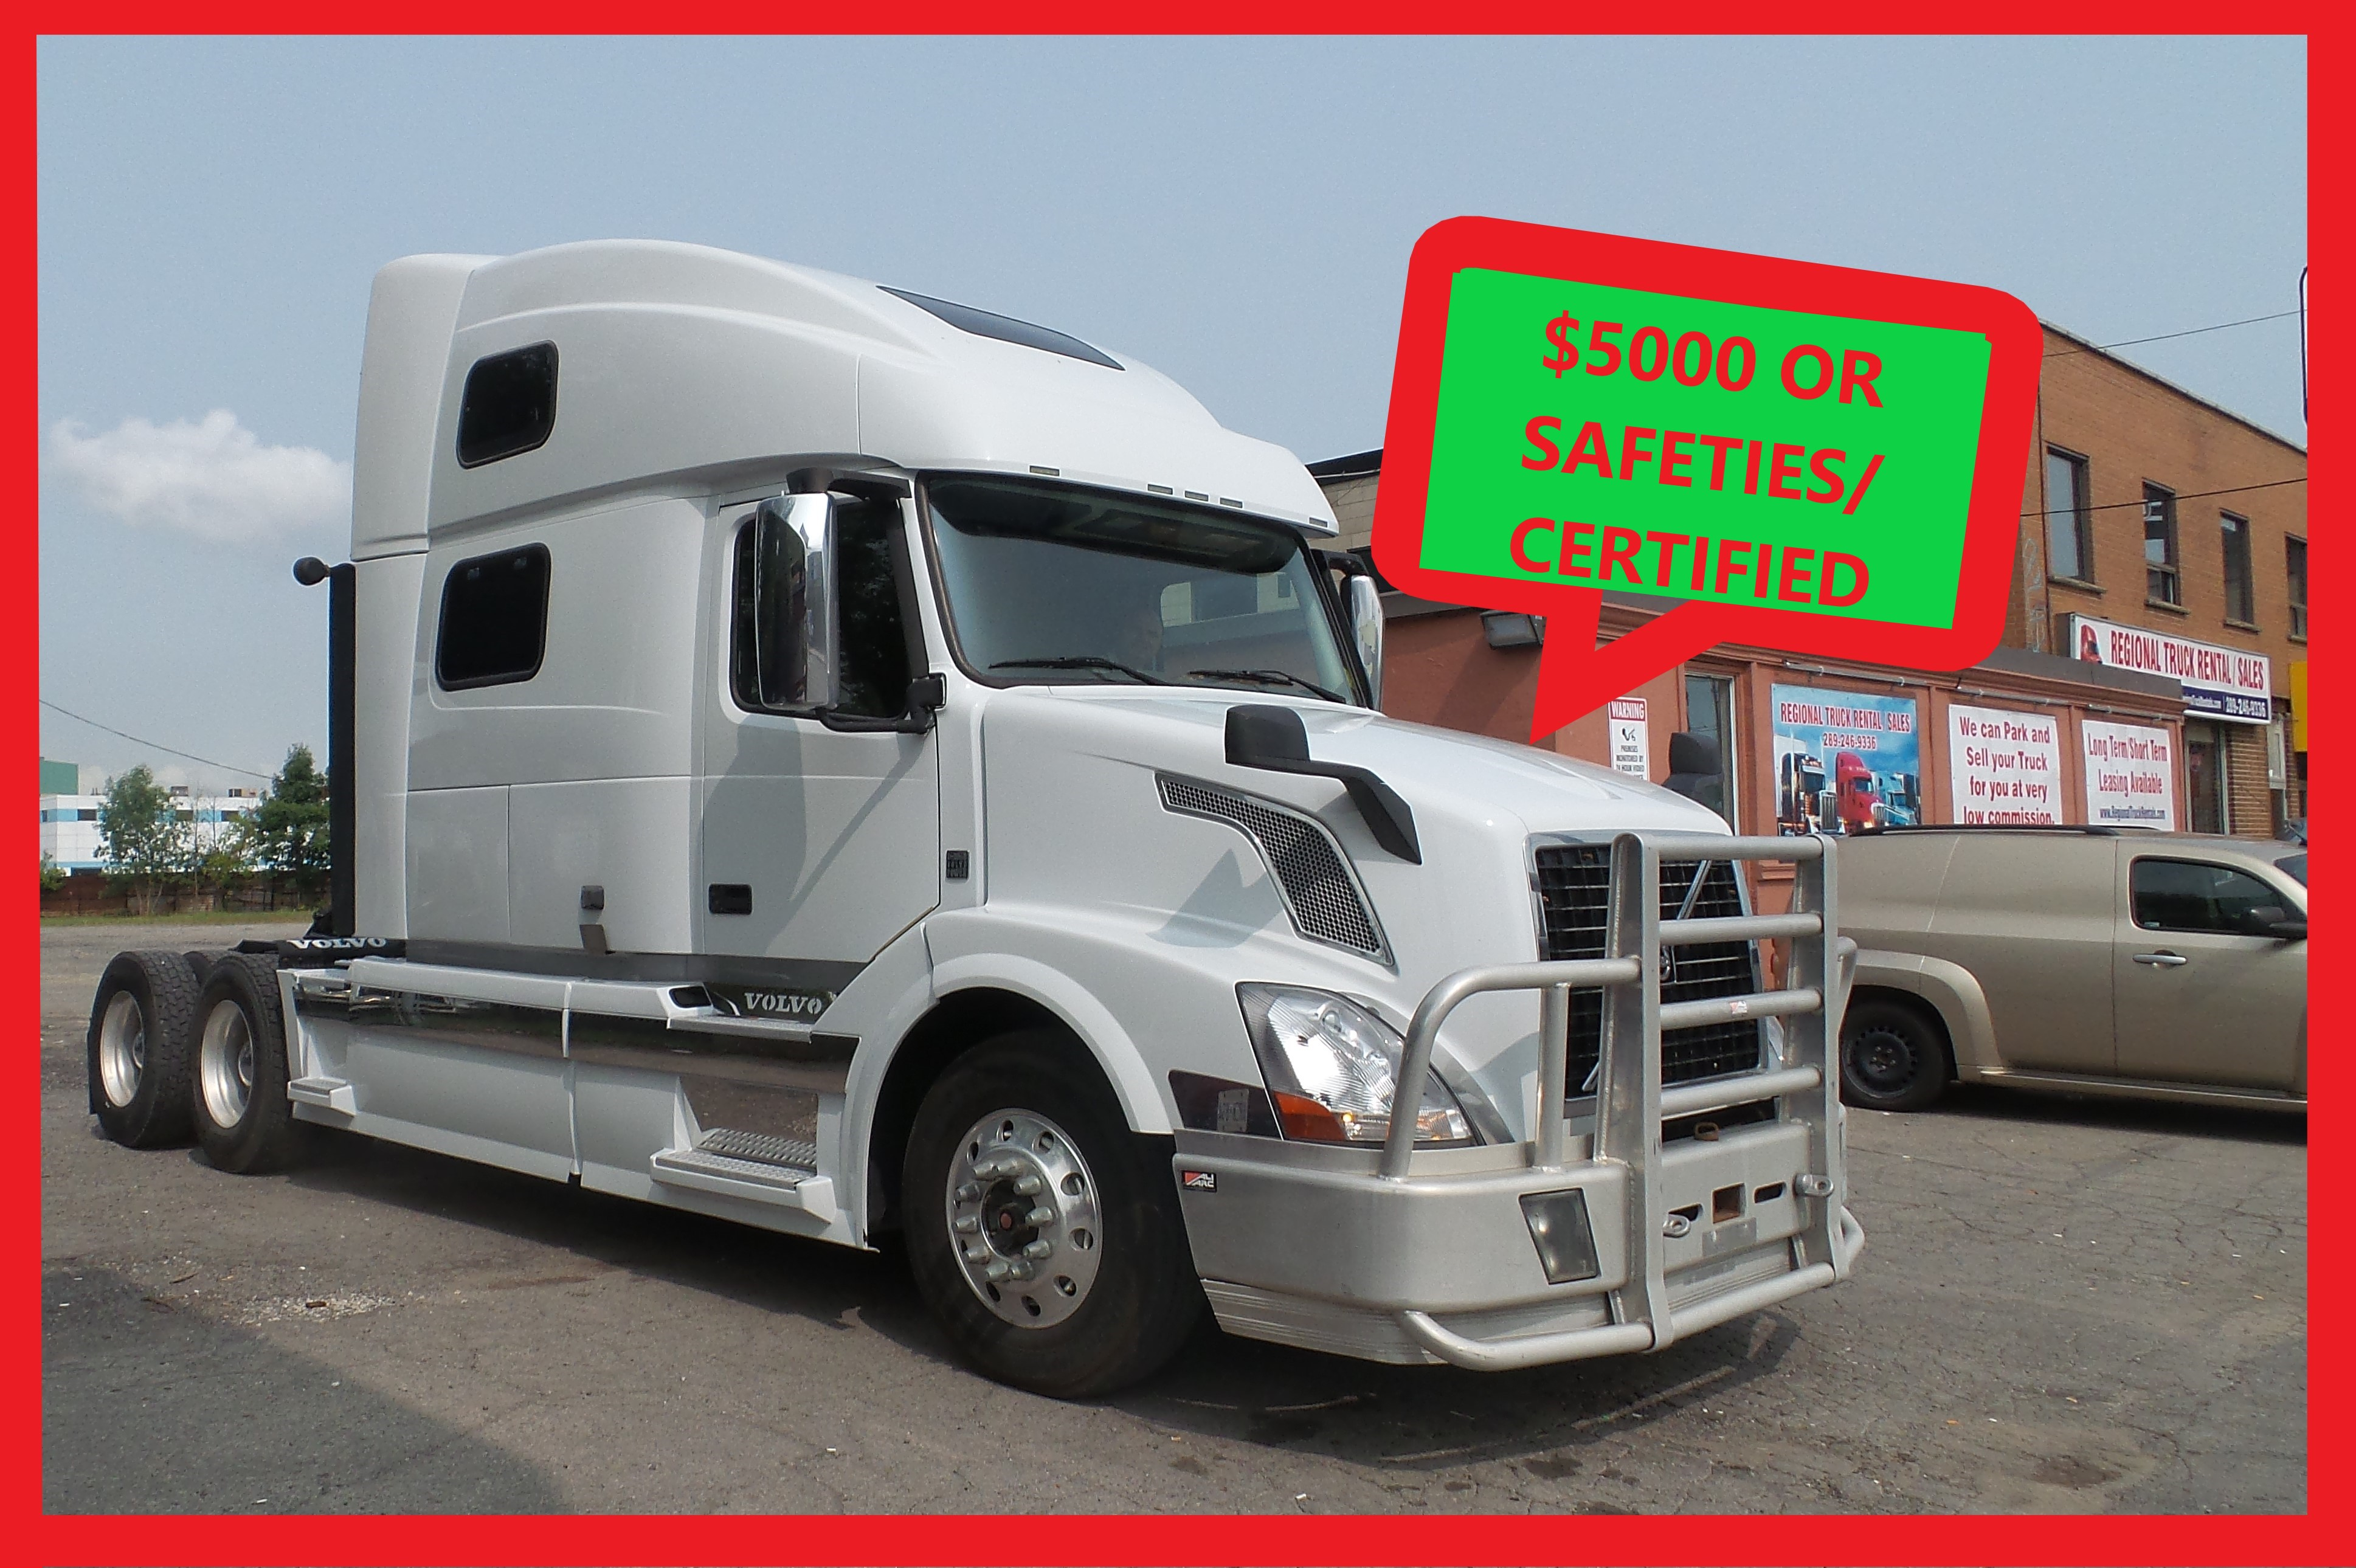 Volvo 2013 VNL64T 780 SLEEPER Limited time offer Free all Safeties/Certified or $5,000 Discount